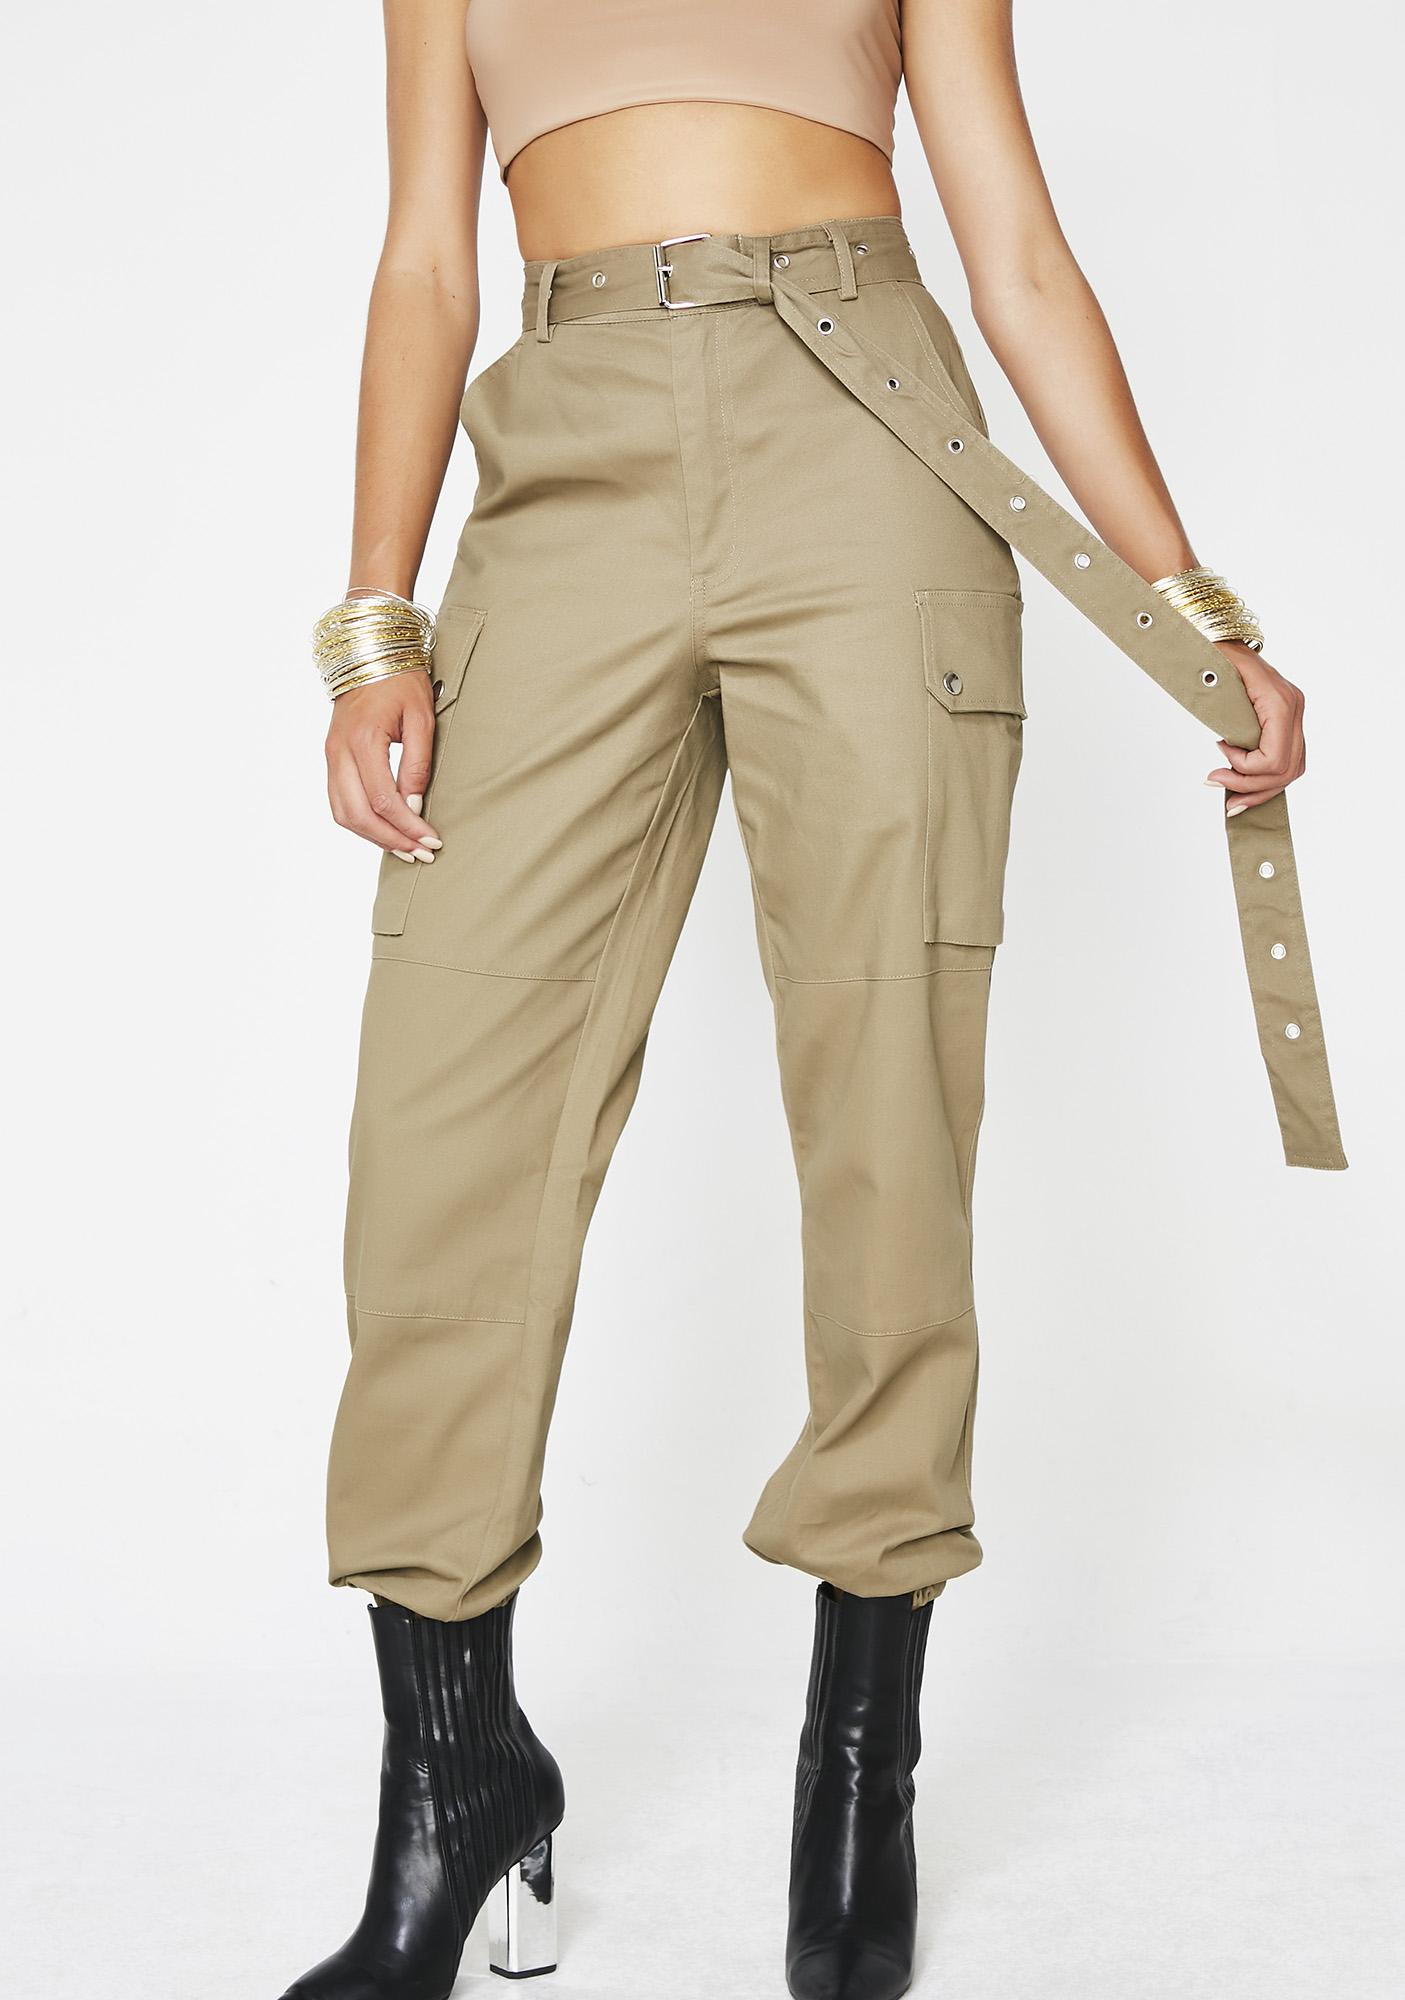 Shroom Raider Cargo Trousers by Hot Delicious